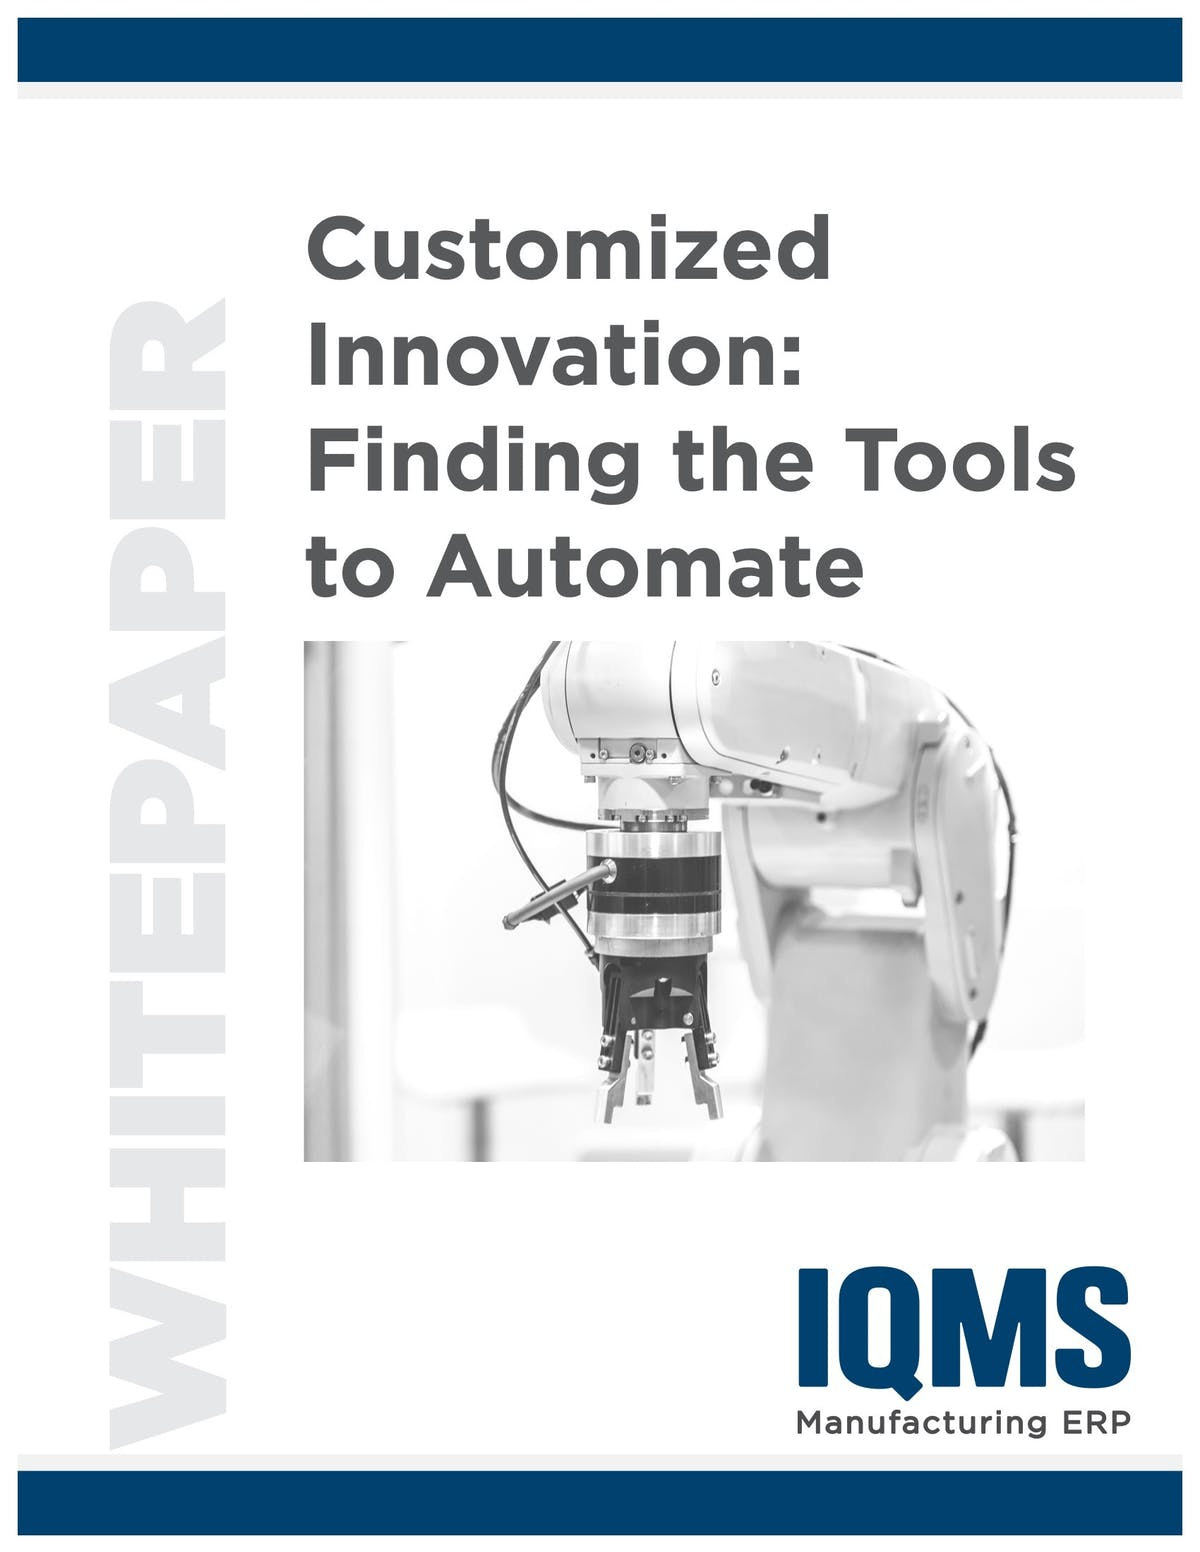 EnterpriseIQ White Paper - Customized Innovation:  Finding The Tools To Automate